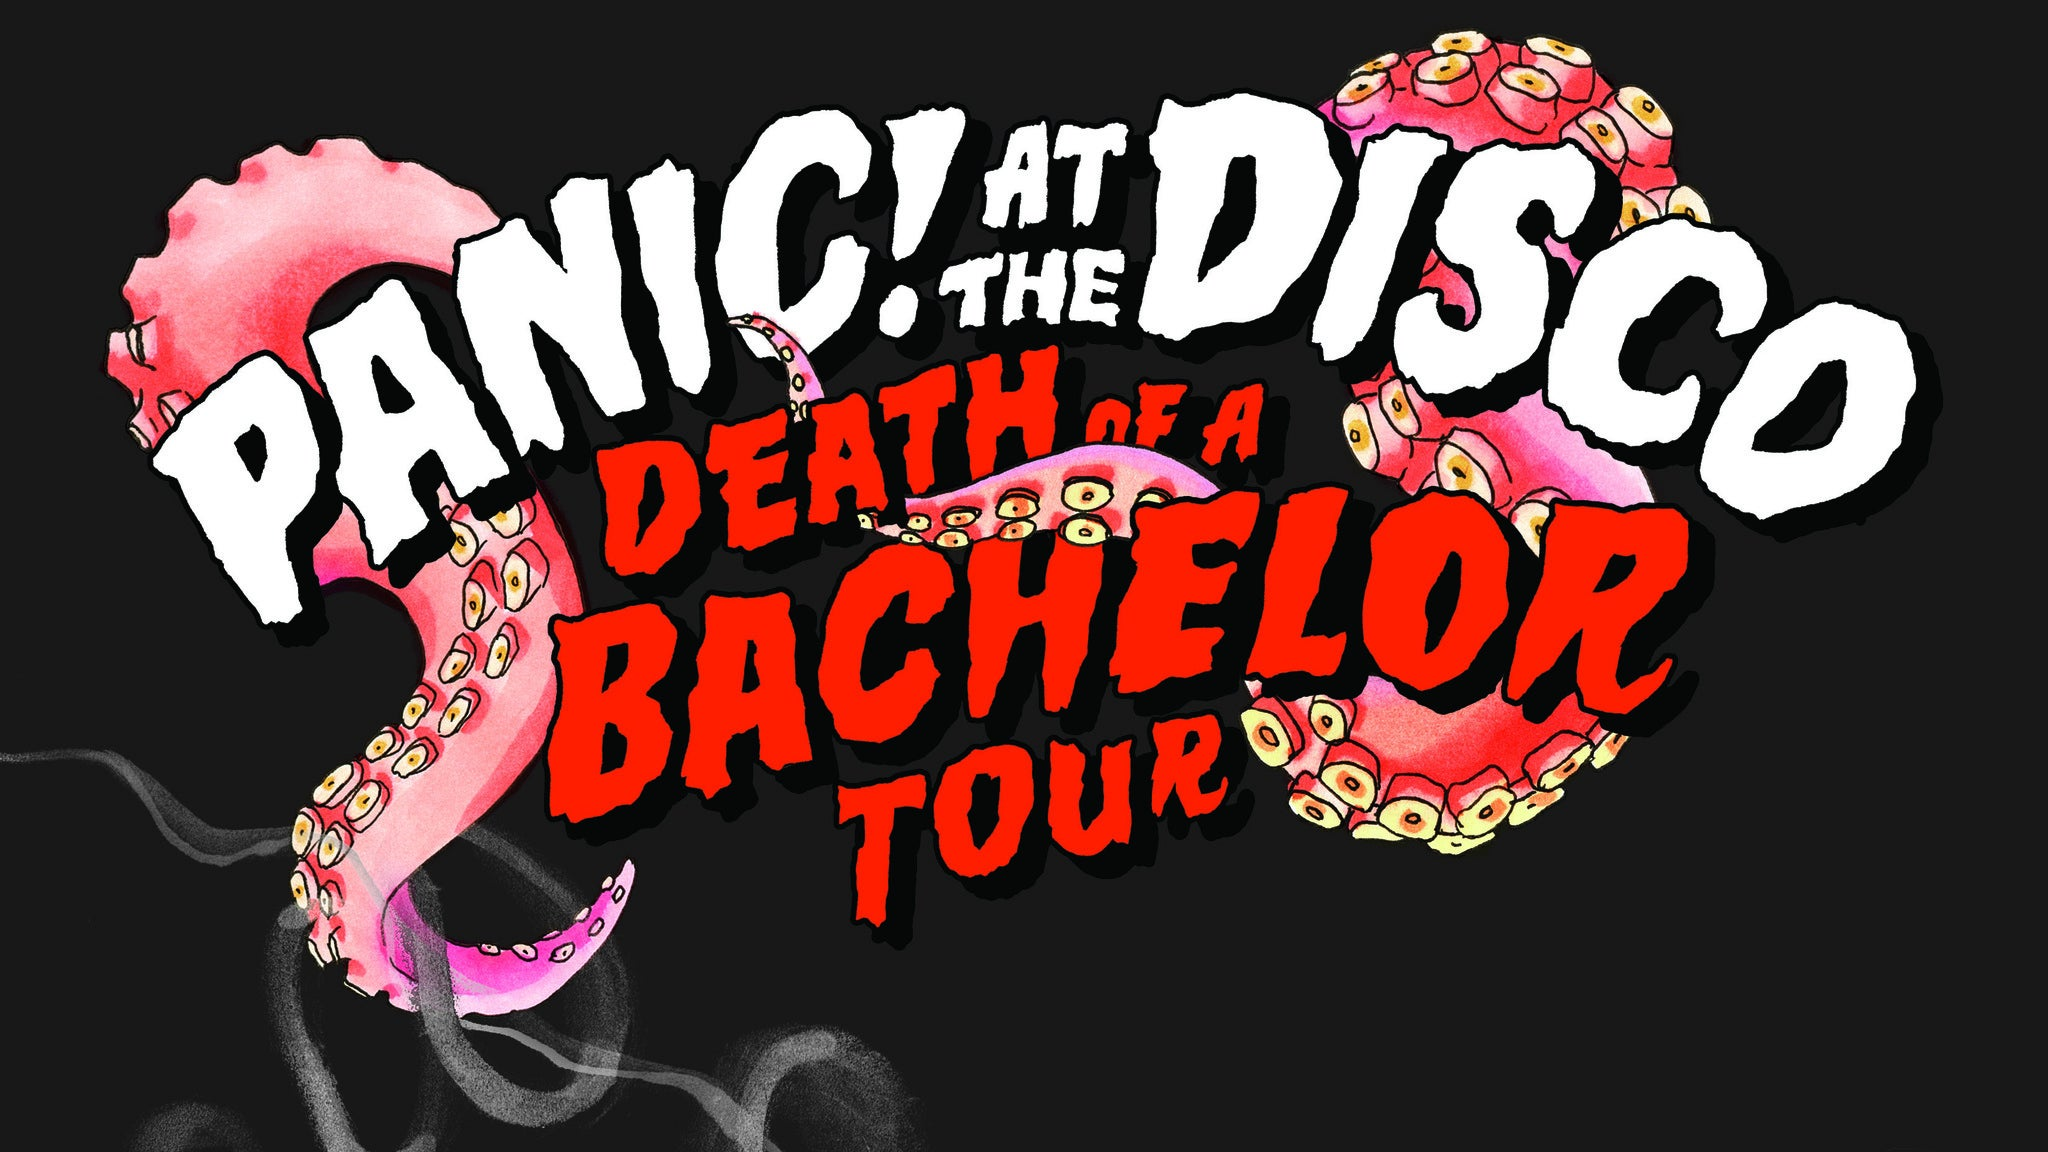 Panic! At The Disco - Death of A Bachelor Tour - Uncasville, CT 06382